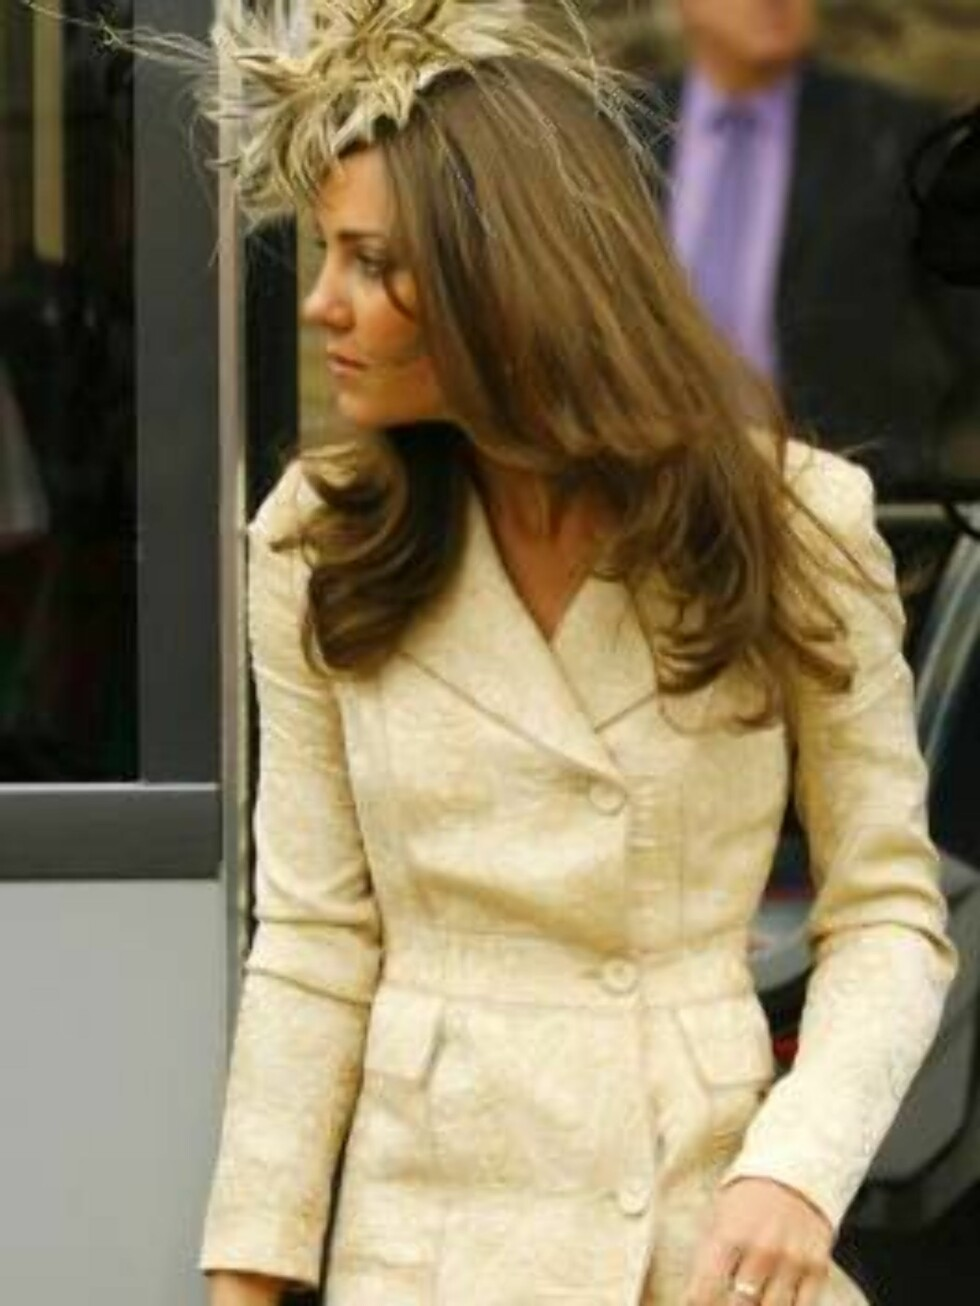 Prince William's girlfriend Kate Middleton arrives at St Cyriac's Church for the wedding of the Duchess of Cornwall's daughter Laura Parker Bowles to former Calvin Klein model Harry Lopes in Lacock, Wiltshire, England Saturday, May 6, 2006.  (AP Photo/Chr Foto: AP